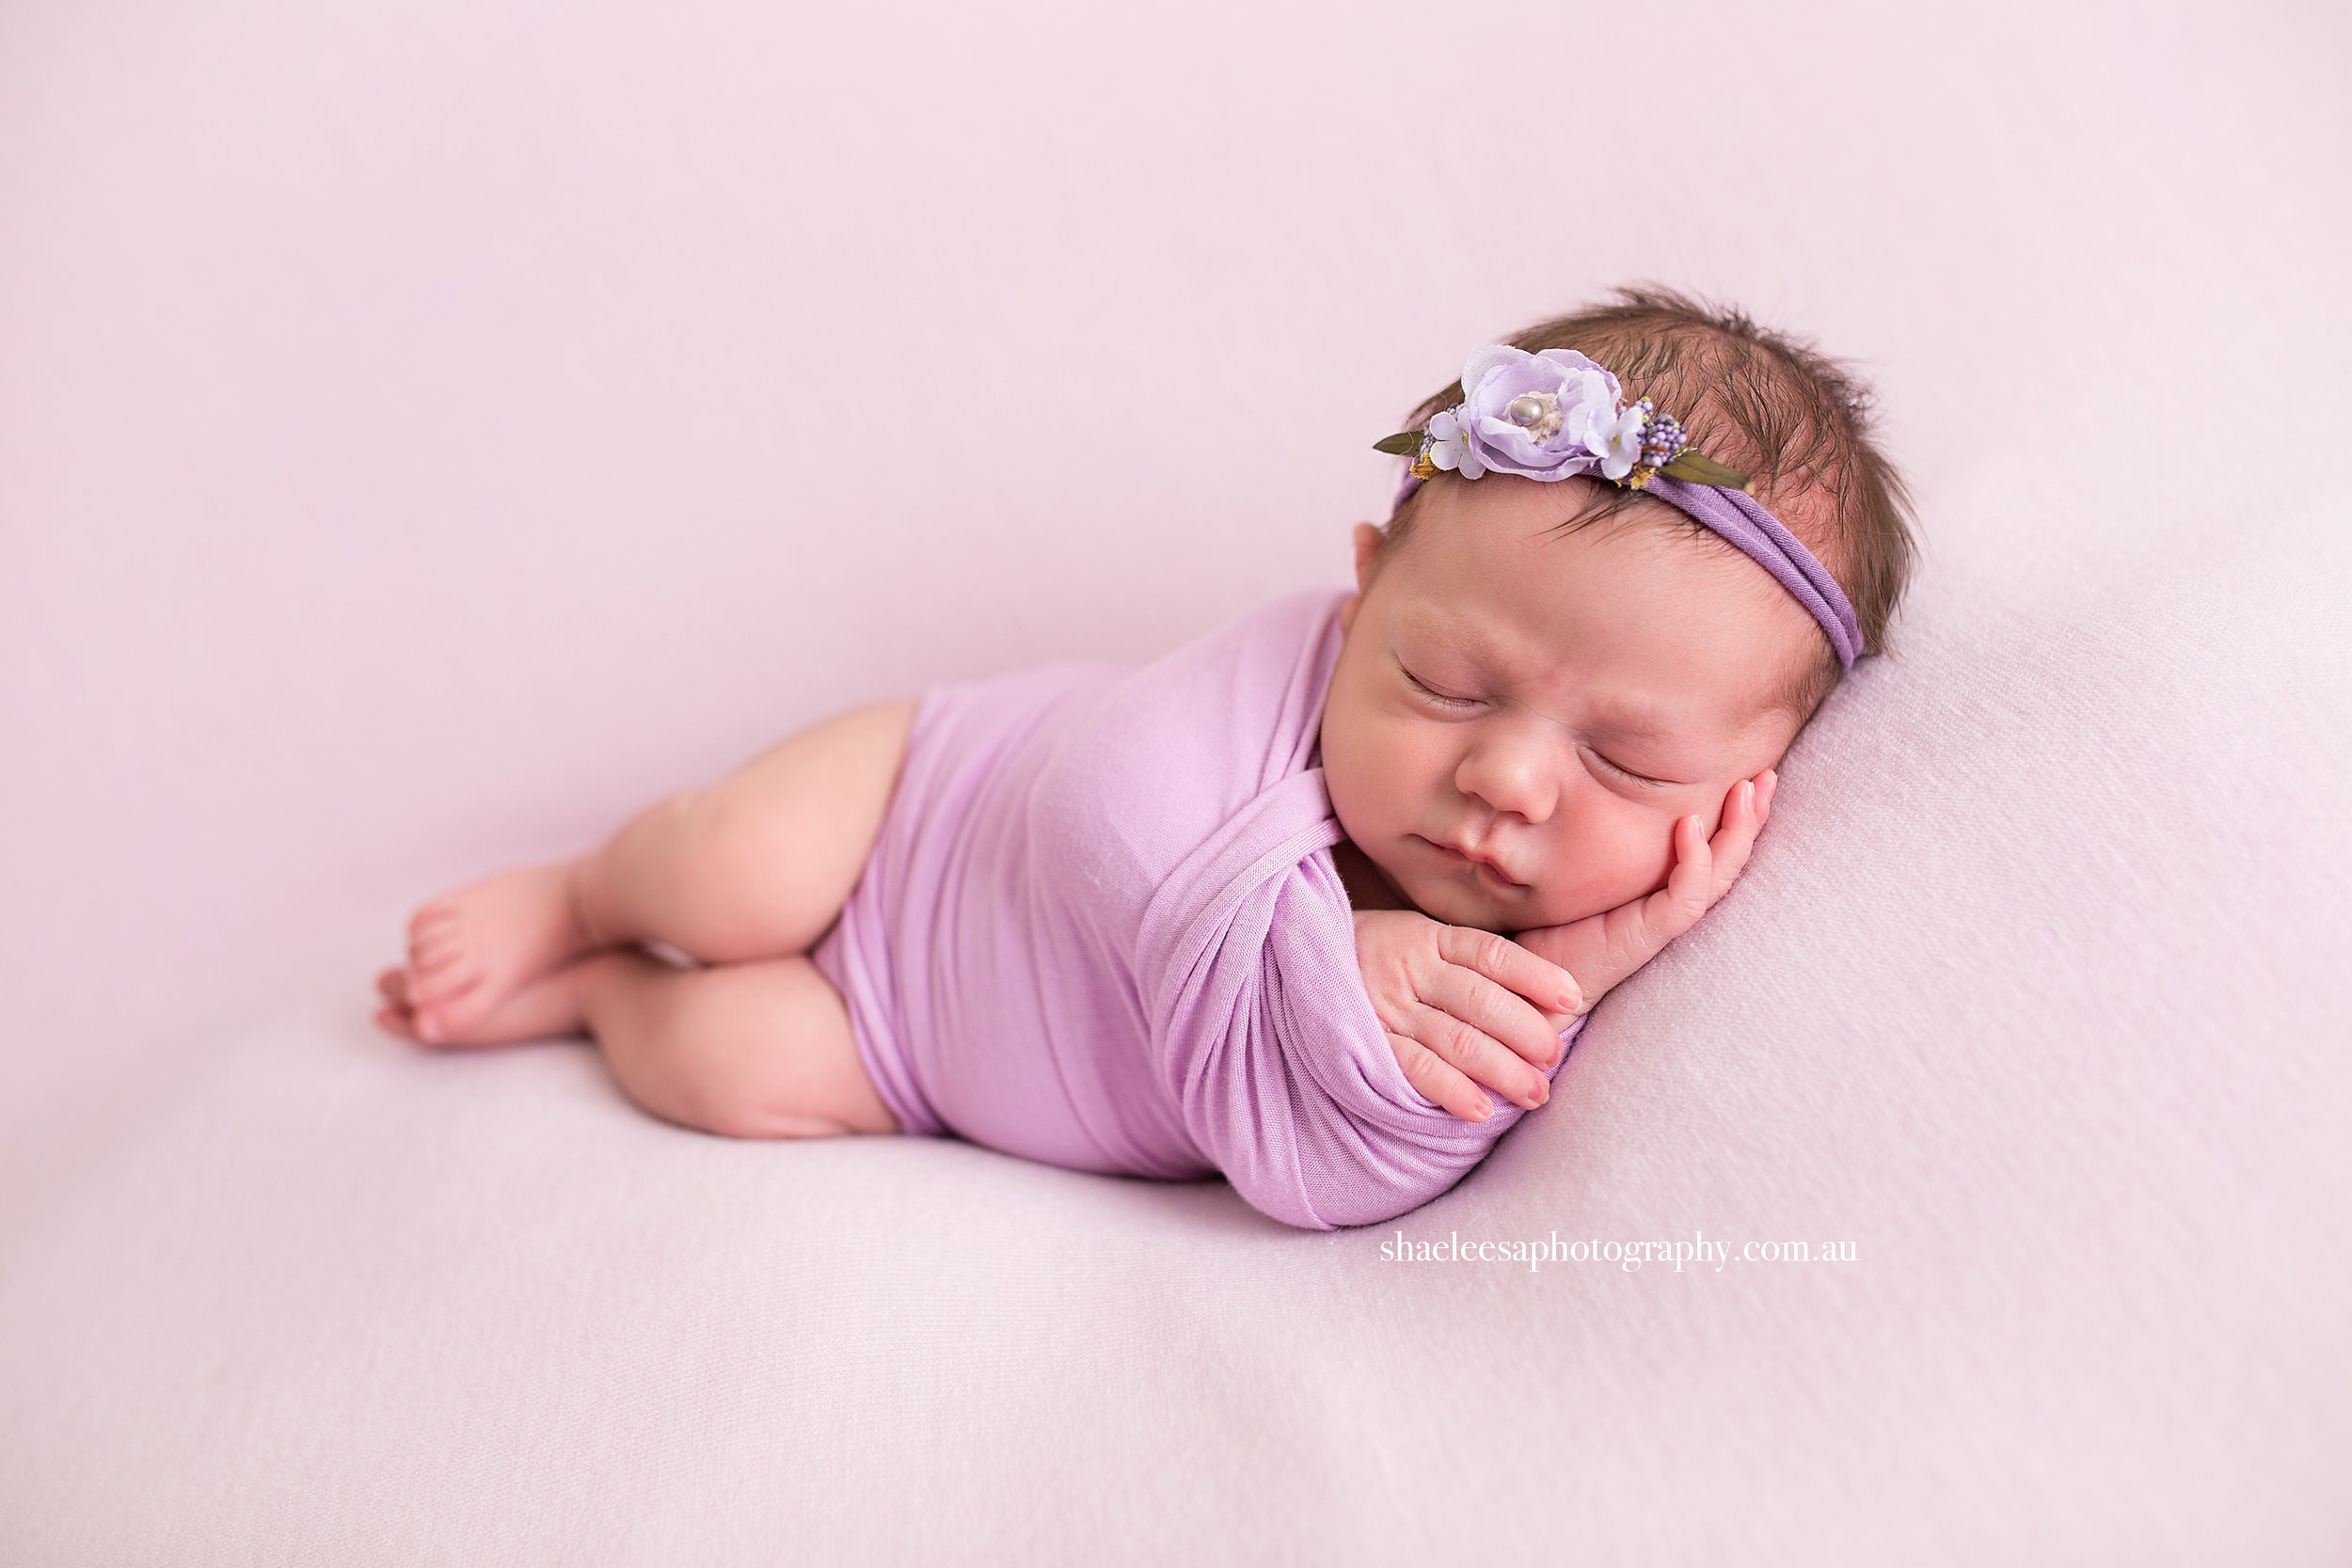 ShaeLeesaPhotography_033_Sealey_Newborn.jpg